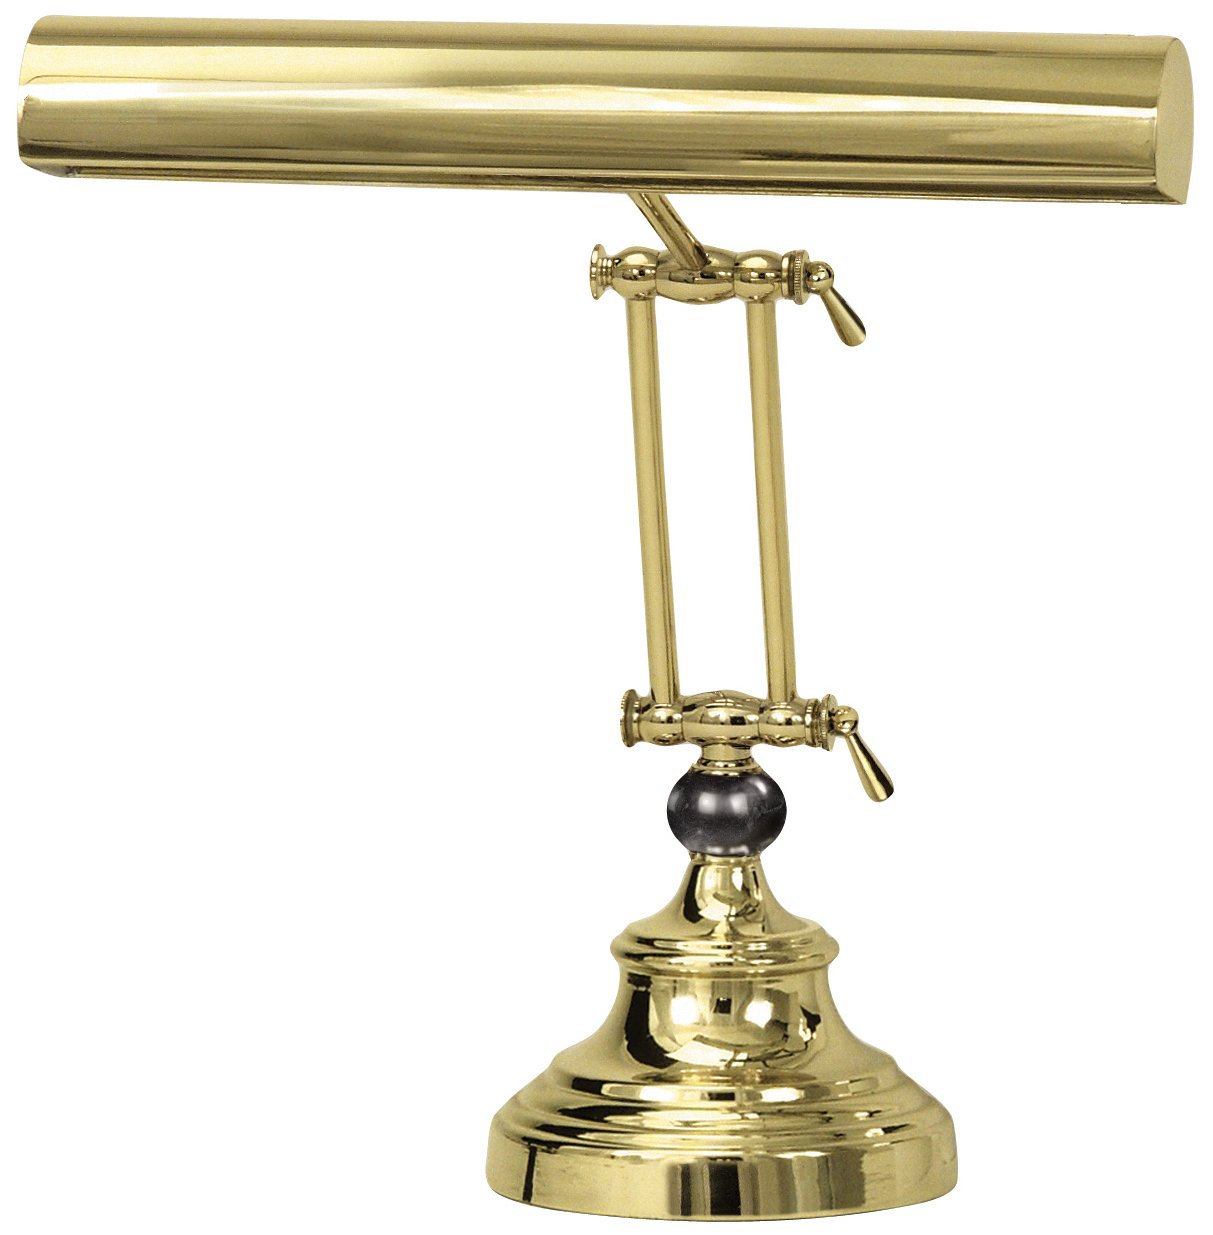 House of Troy AP14-42-61 Advent Piano/Desk Lamp, 14'', Polished Brass